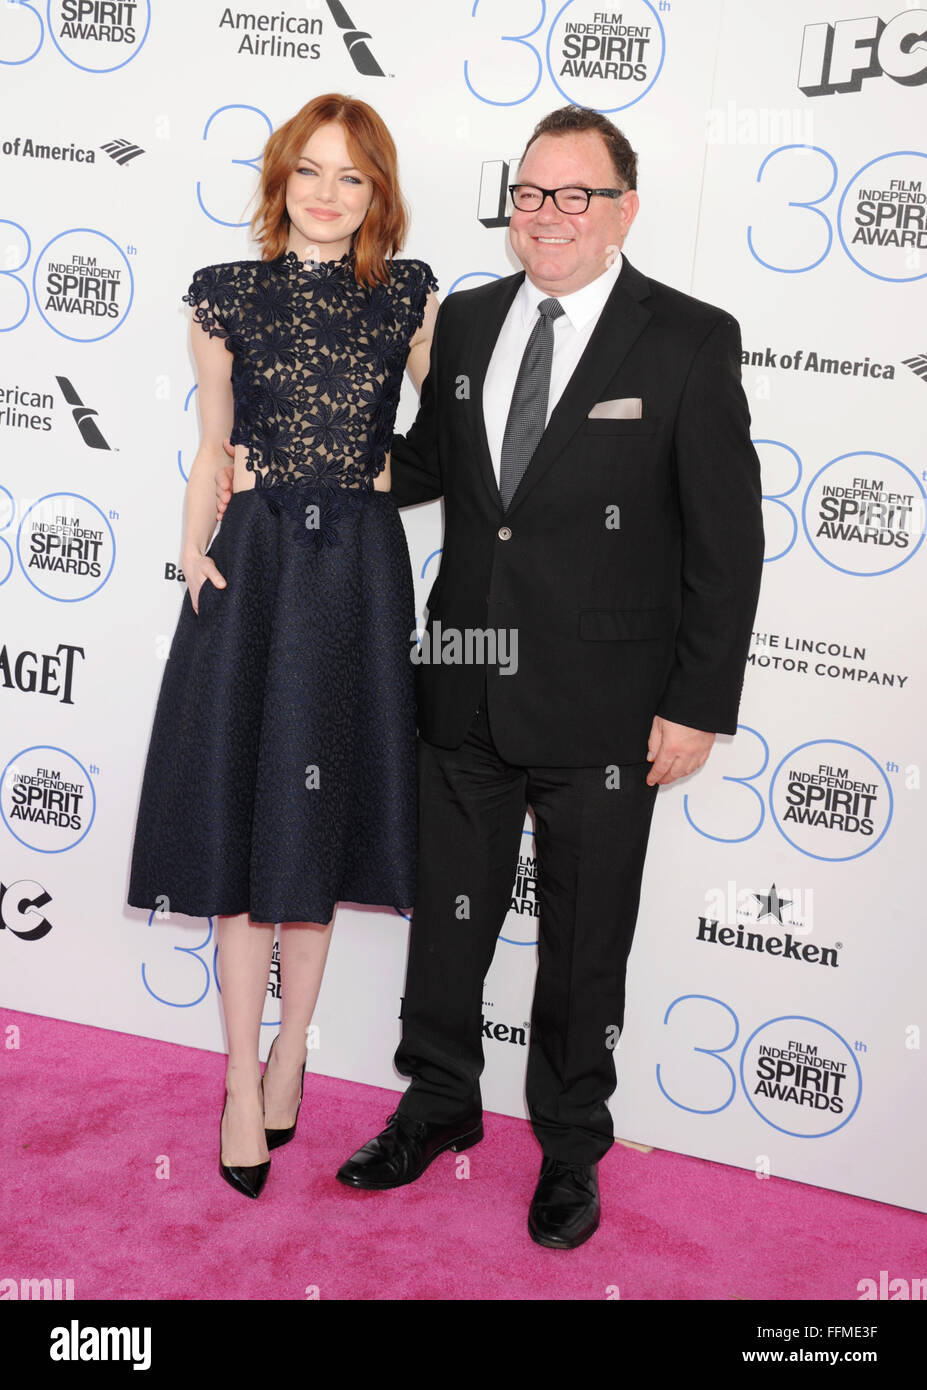 Actress Emma Stone (L) and father Jeff Stone arrive at the 2015 Film Independent Spirit Awards on February 21, 2015 - Stock Image